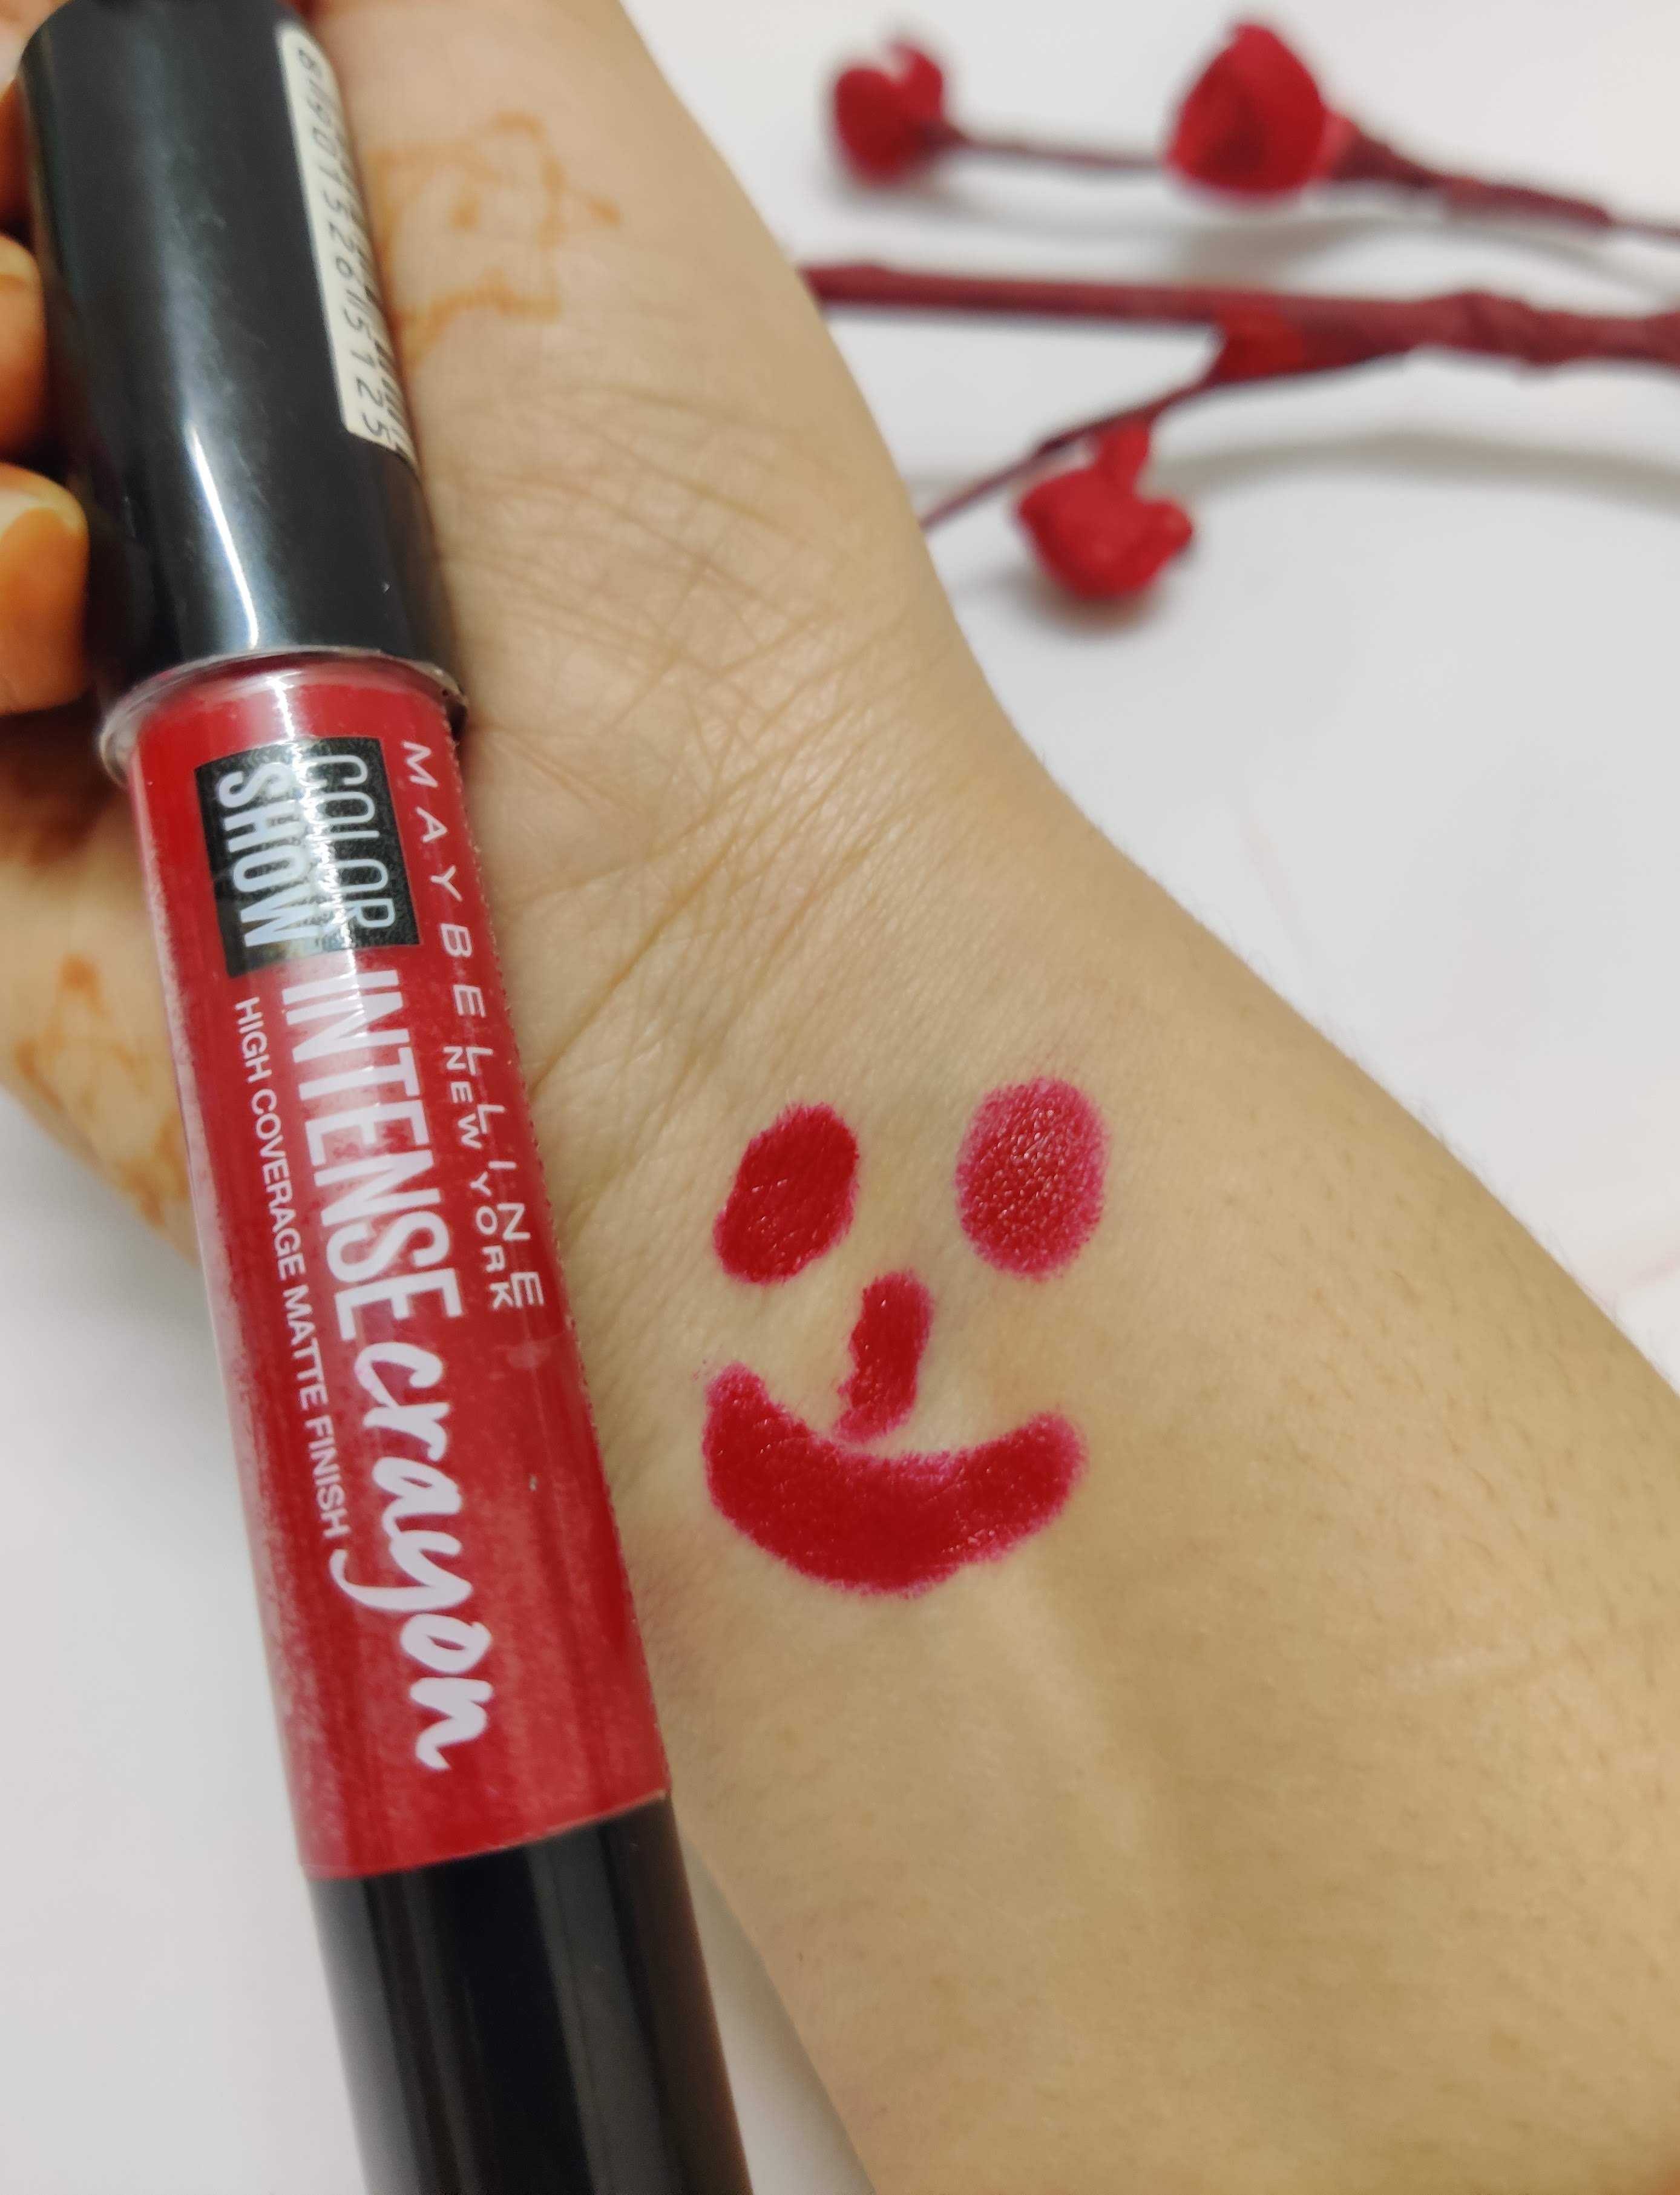 Maybelline New York Color Show Intense Crayon pic 1-Its smudges very easily-By thespokenreview